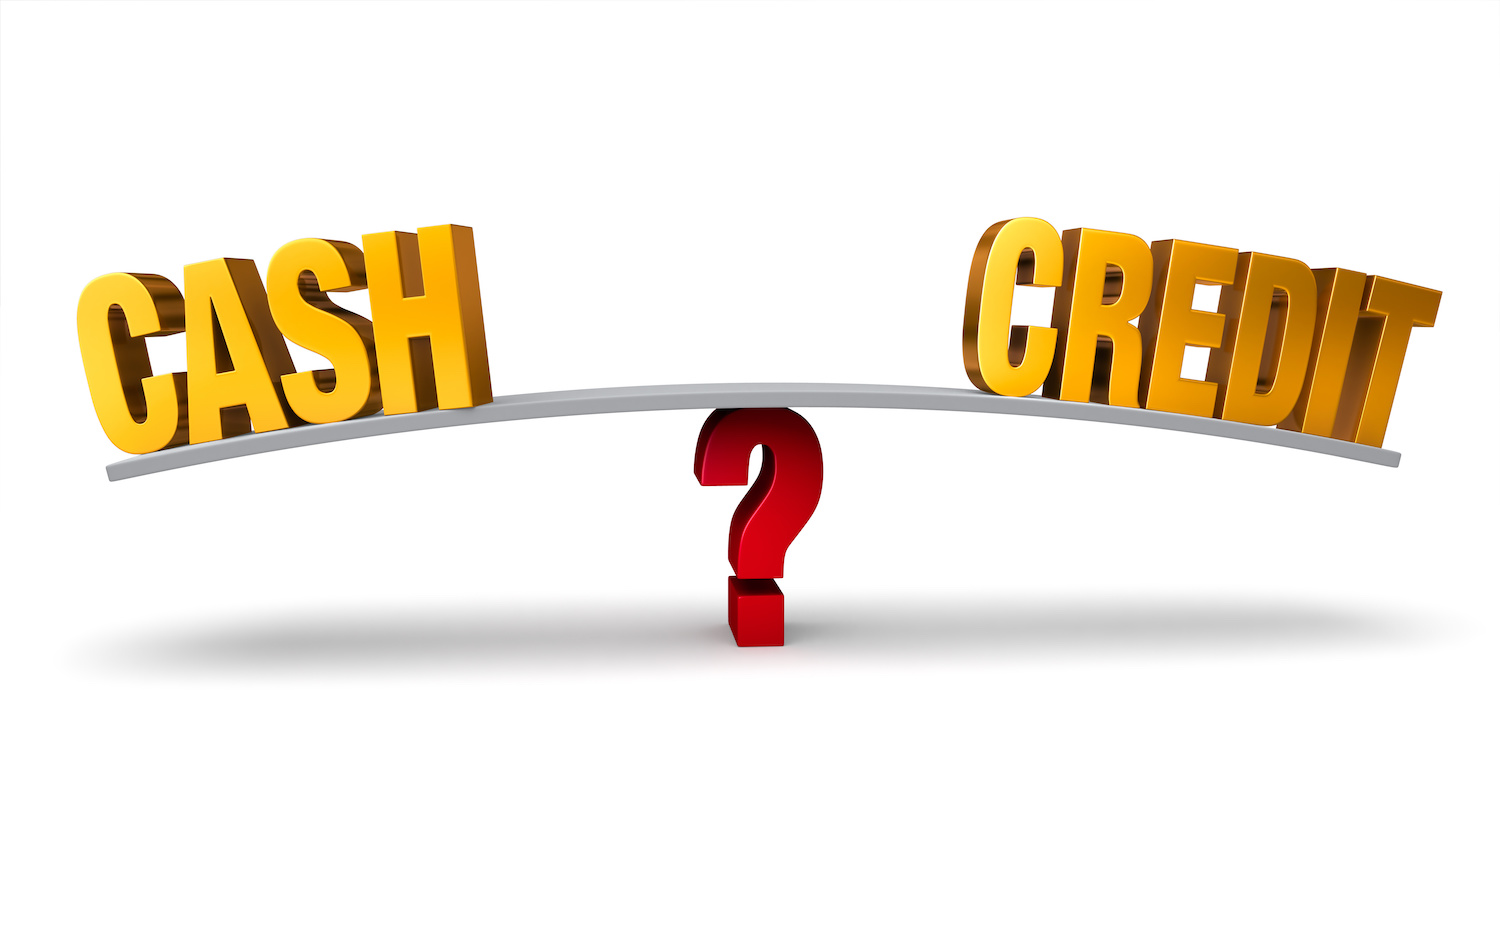 credit card vs paying cash We've uncovered the truth about credit card debt  you've told yourself paying online with a credit card is safer,  the truth about cash vs credit cards.